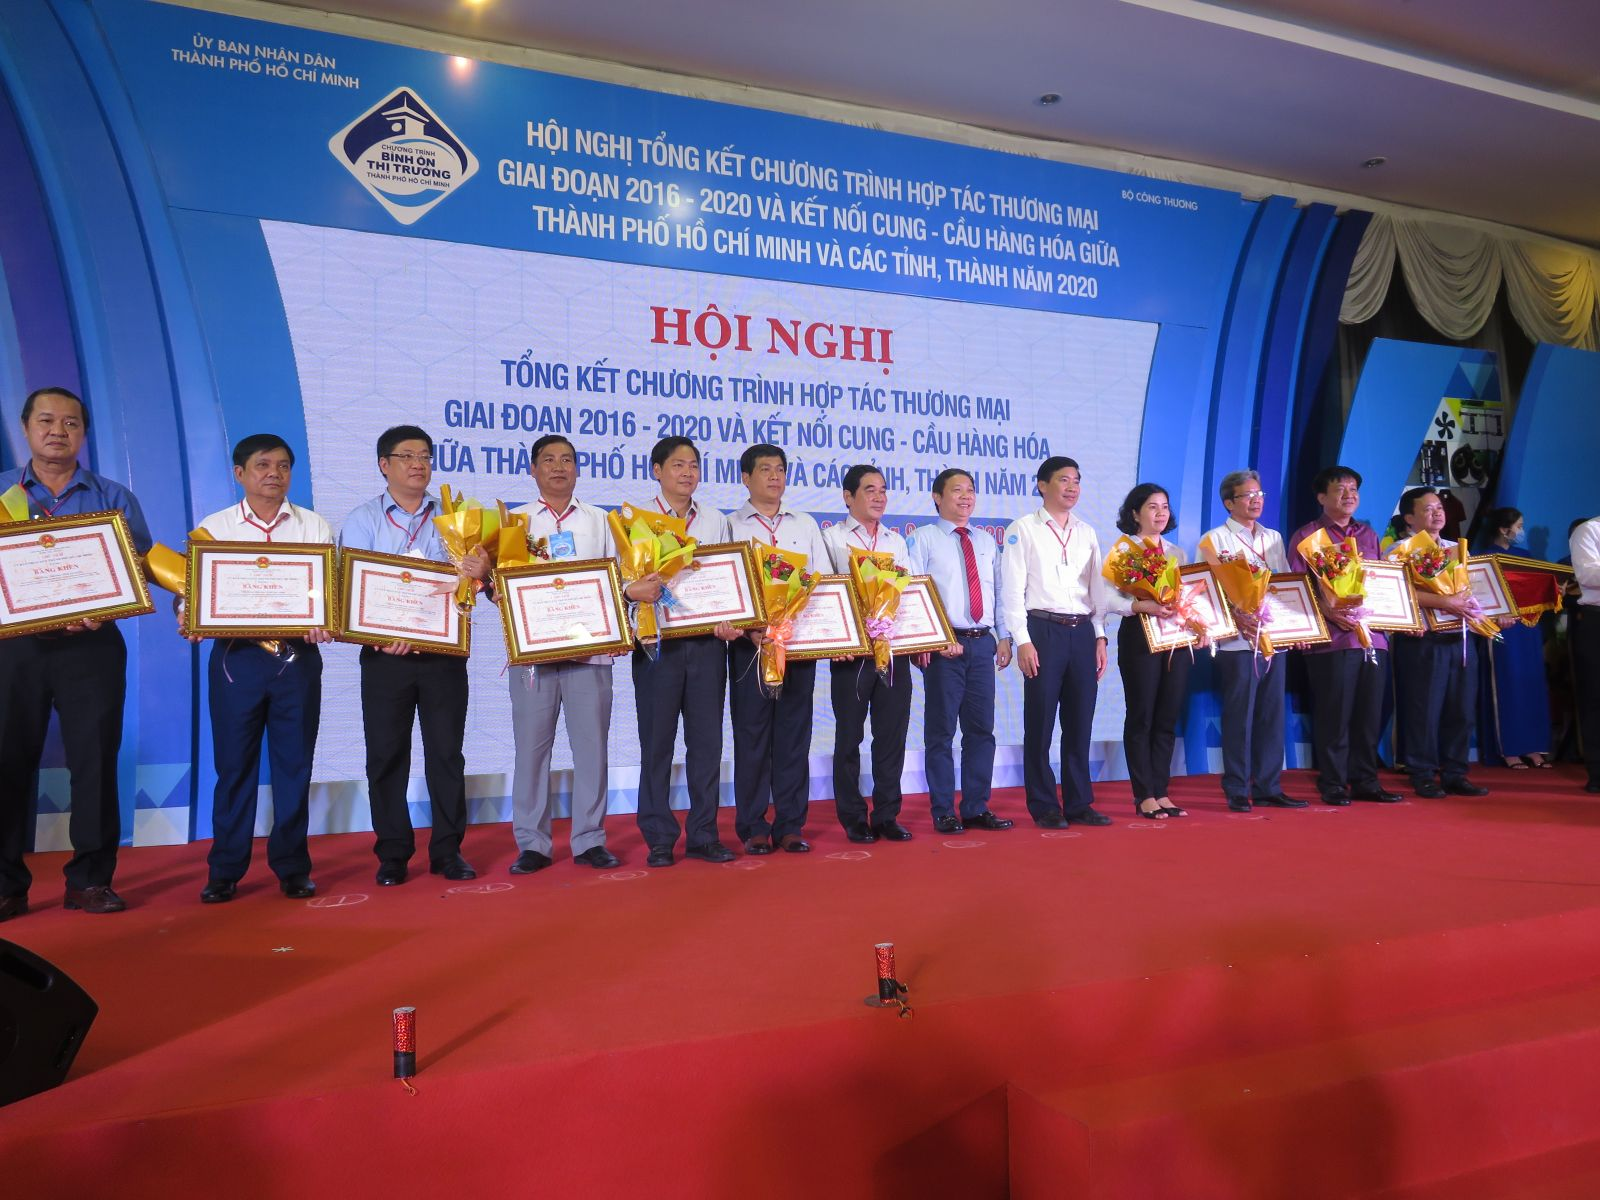 Ho Chi Minh City People's Committee awards Certificates of Merit to units actively implementing trade cooperation in the period 2016-2020